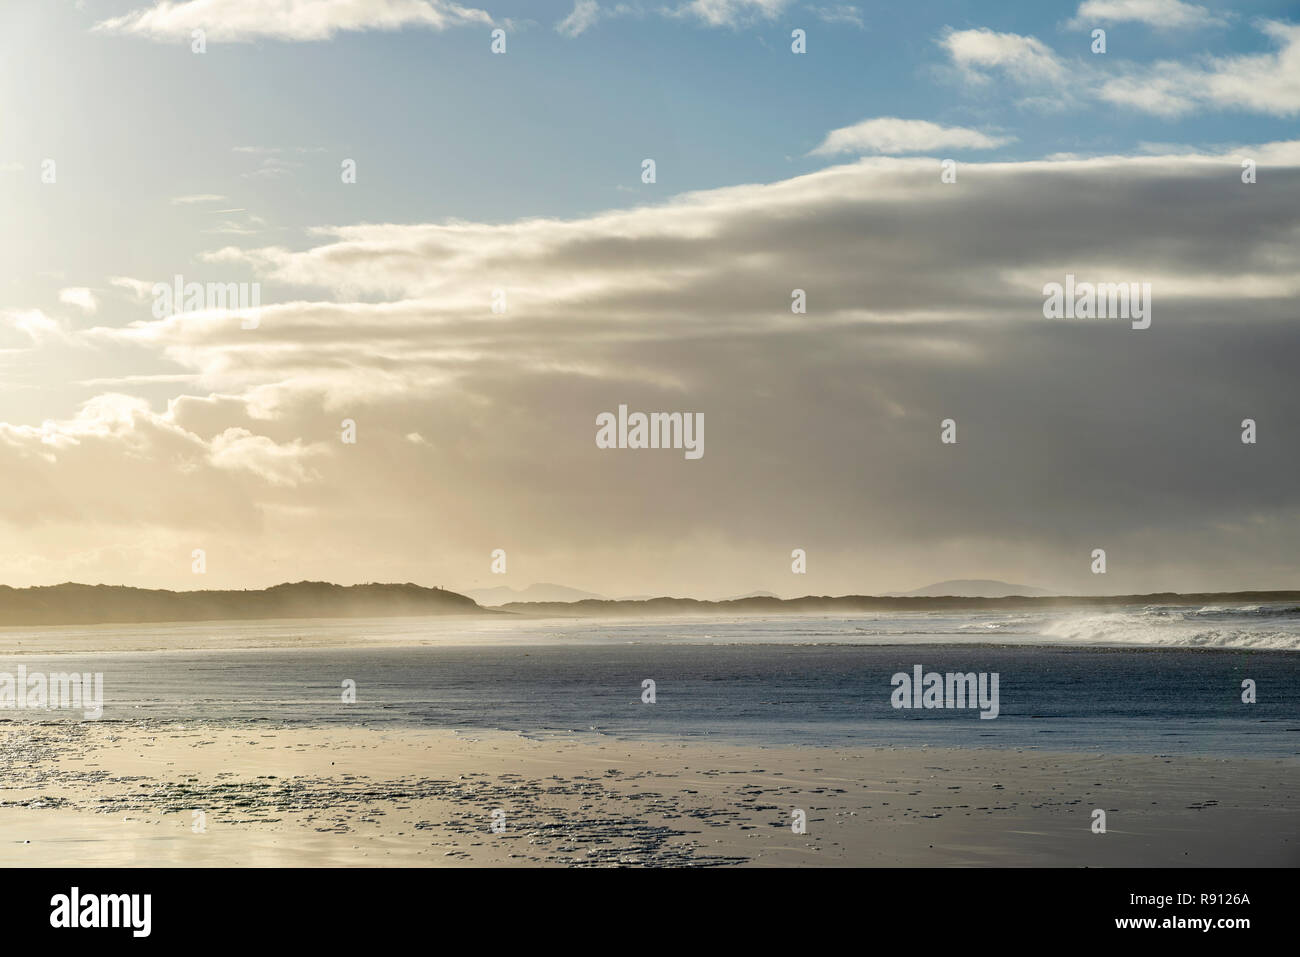 South Uist beach and grass-covered sand dunes - Stock Image